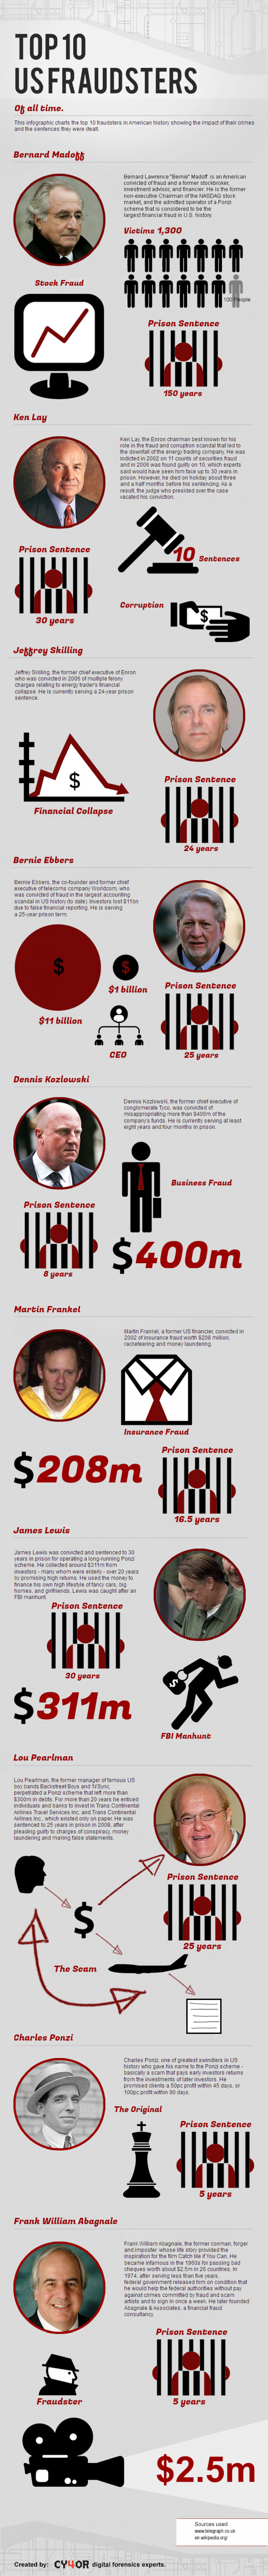 Top 10 US Fraudsters of All Time Infographic